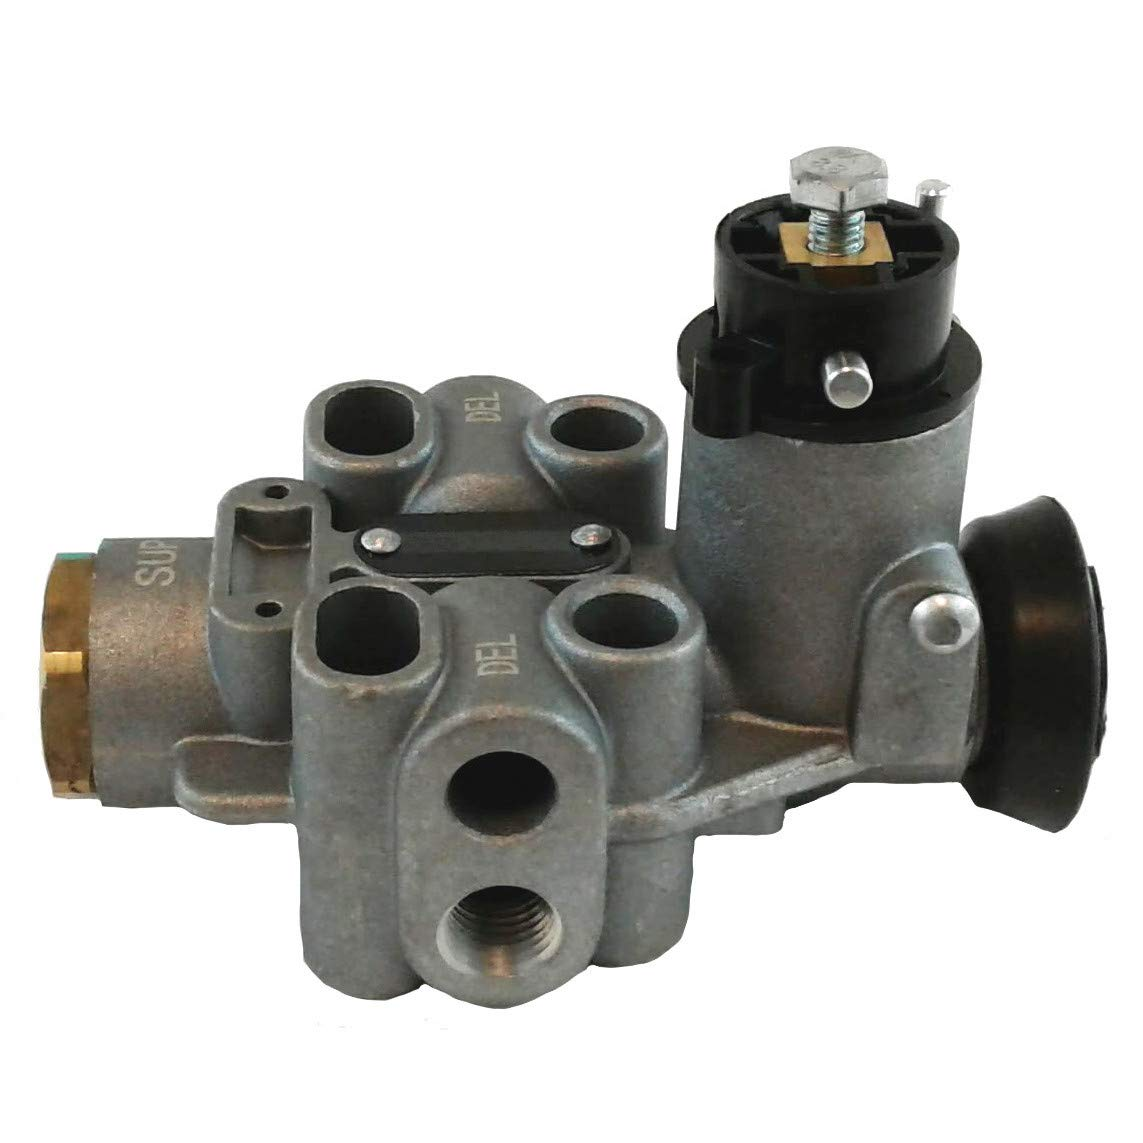 Air Springs Chassis Height Control Valve - Non-Time Delay Valve for Heavy Duty Big Rigs